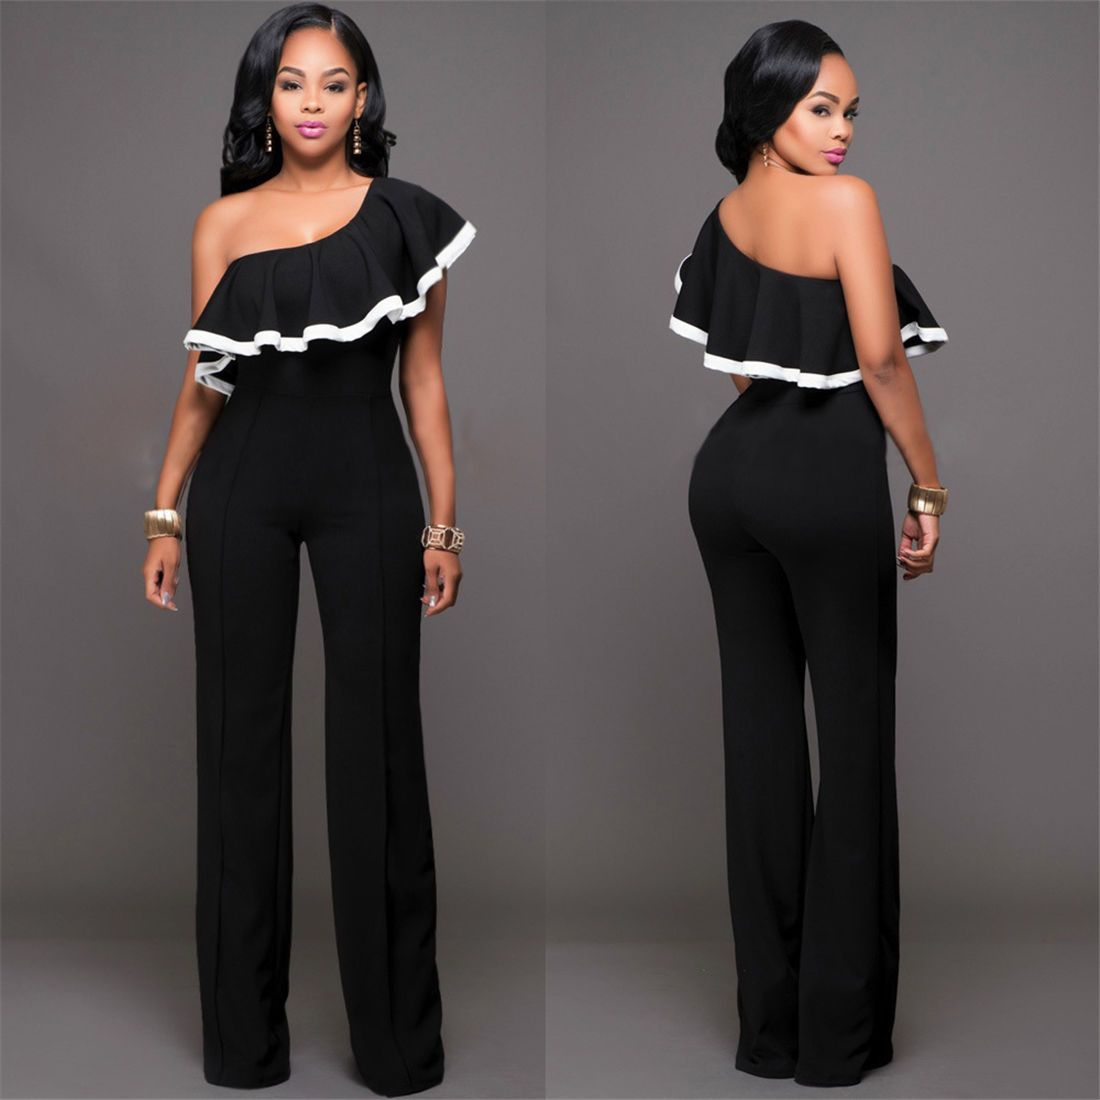 3a32fd7bff Women Clubwear One Shoulder Tops Playsuit Bodycon Party Jumpsuit Romper  Trousers